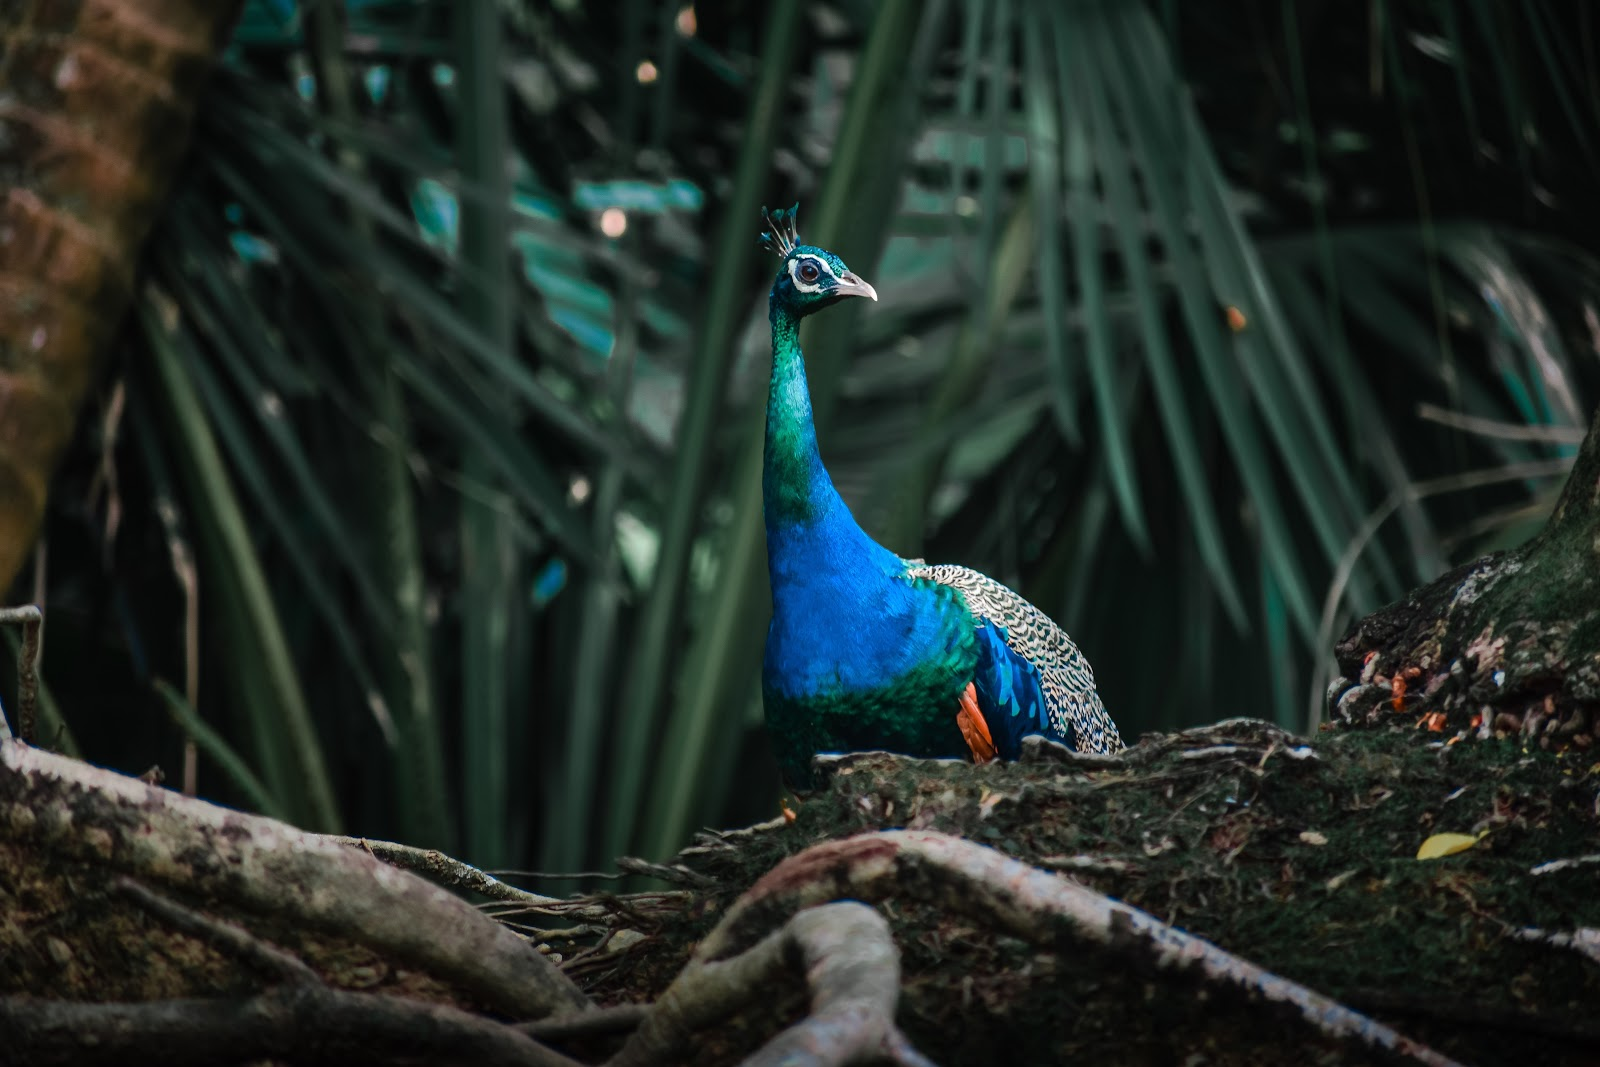 blue-and-green-peacock-images